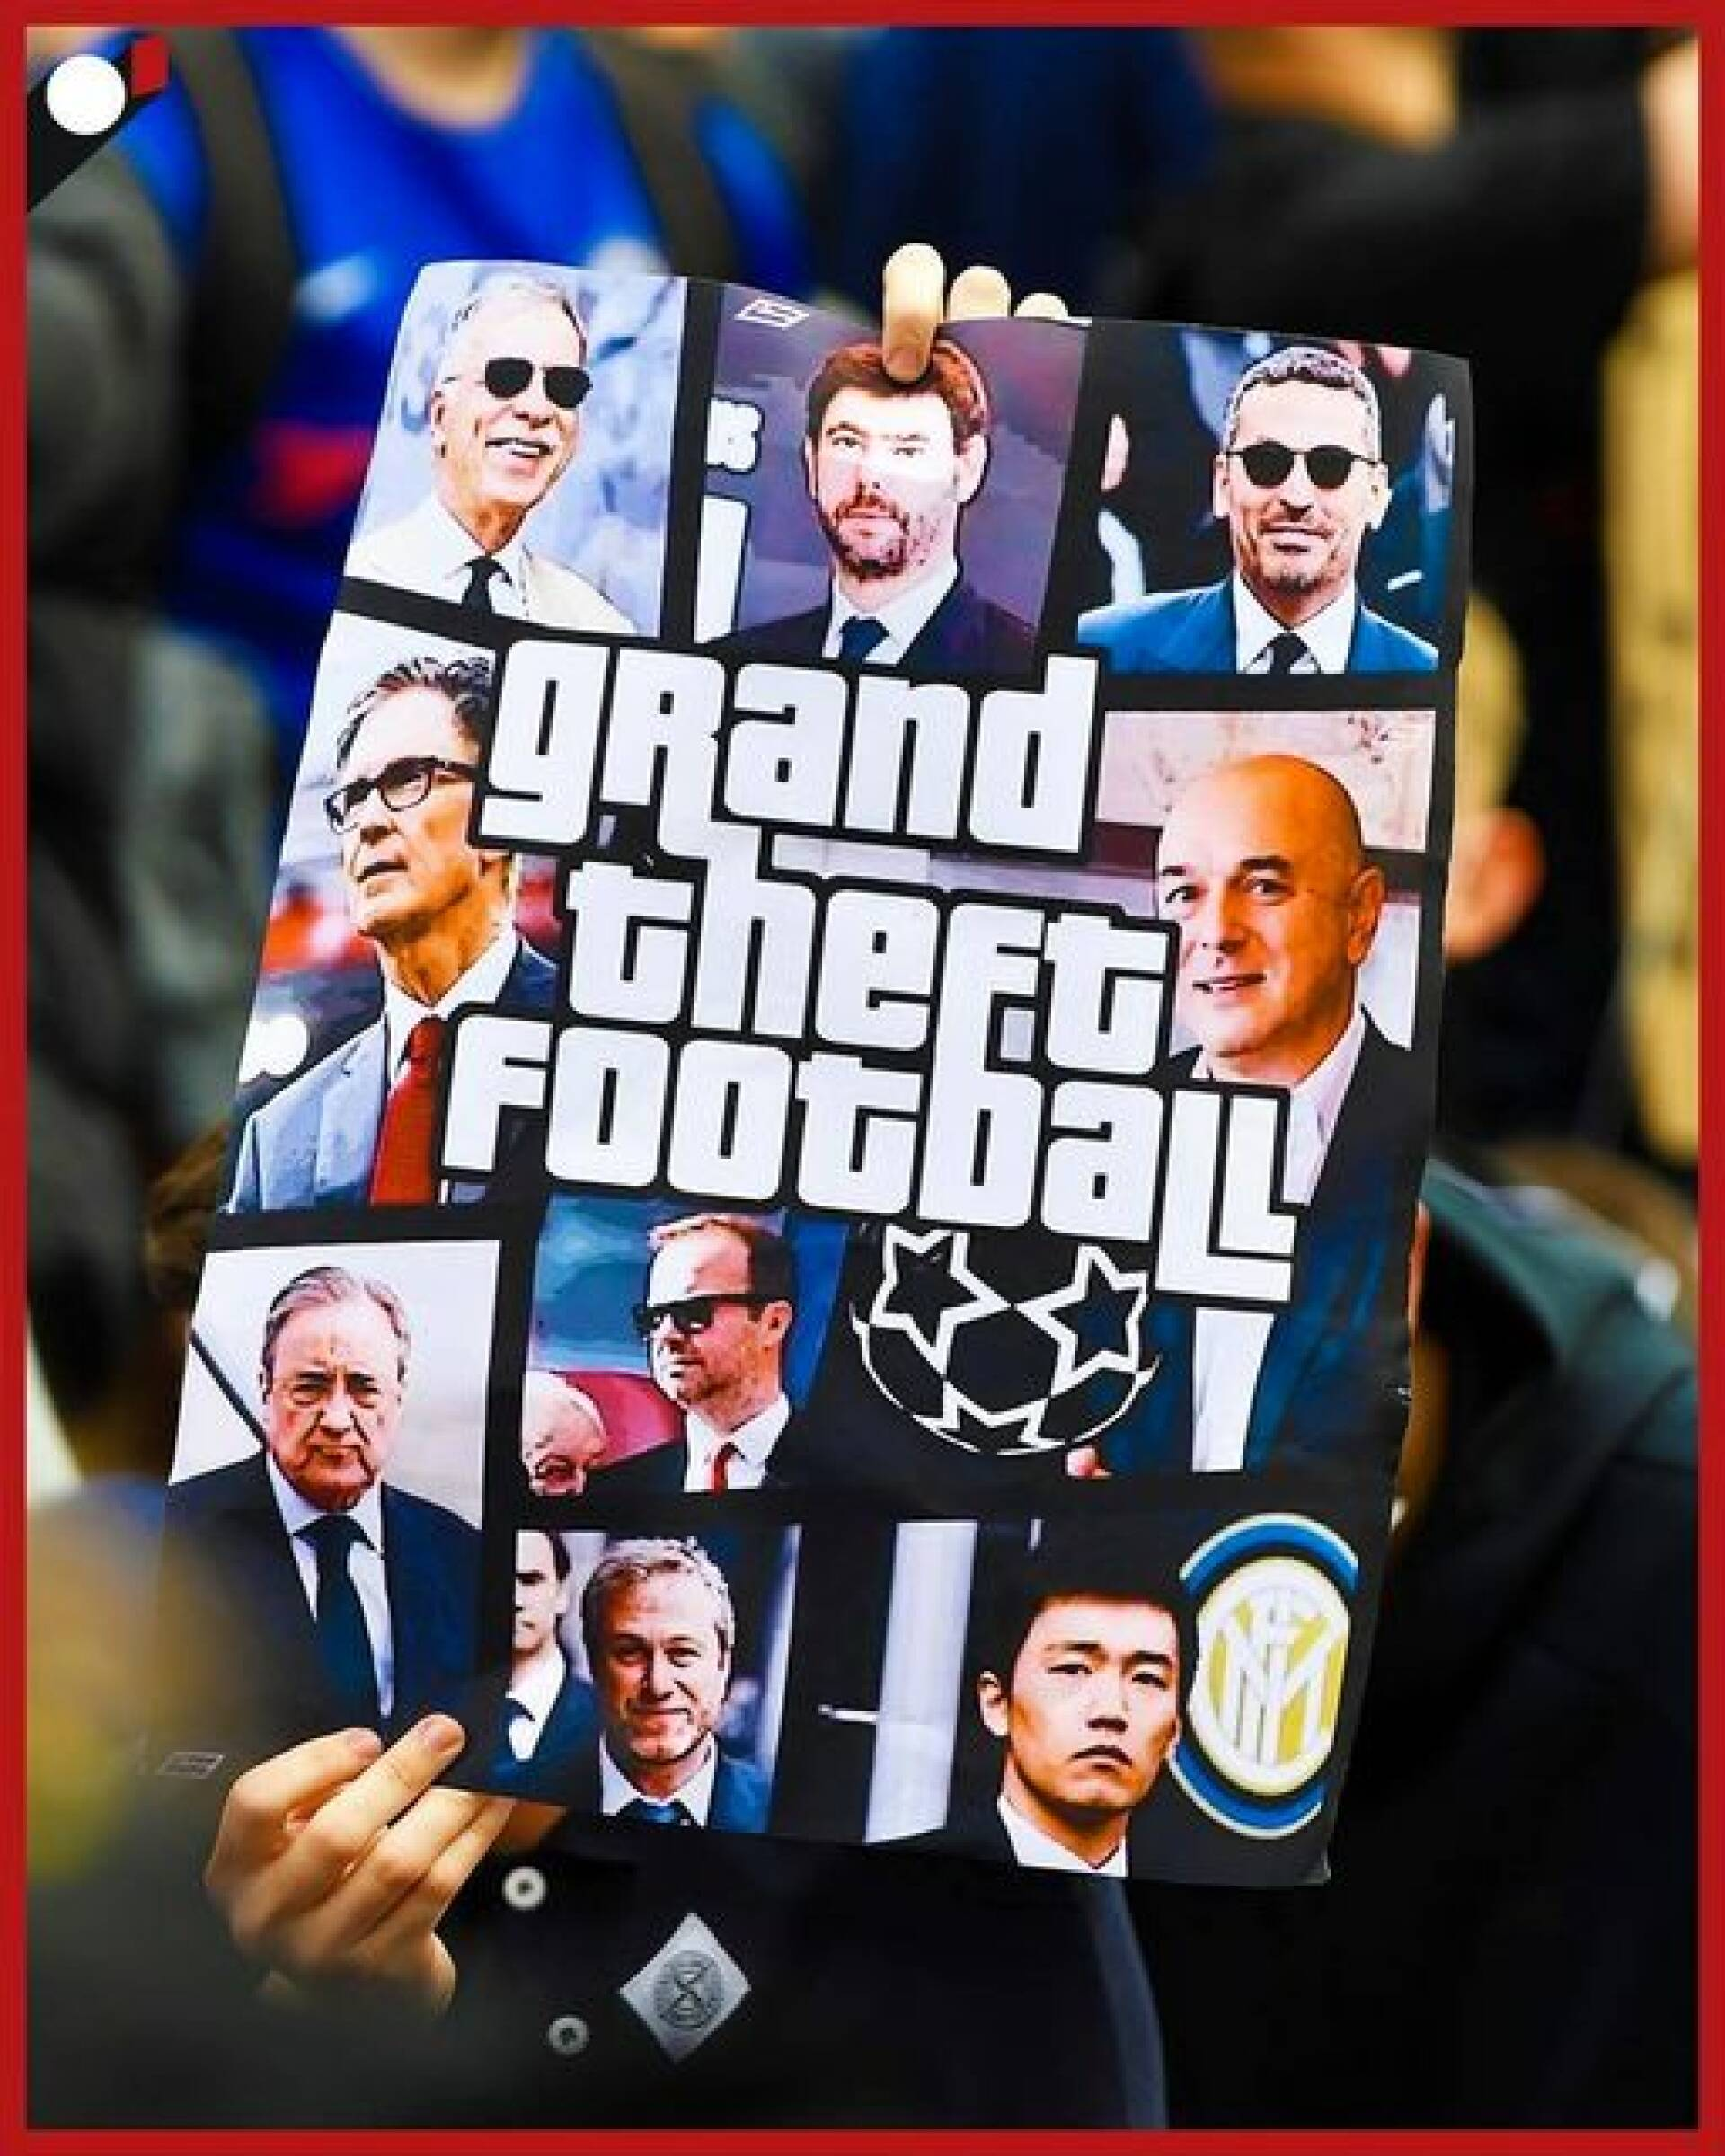 Chelsea fans protest Super League (using GTA)